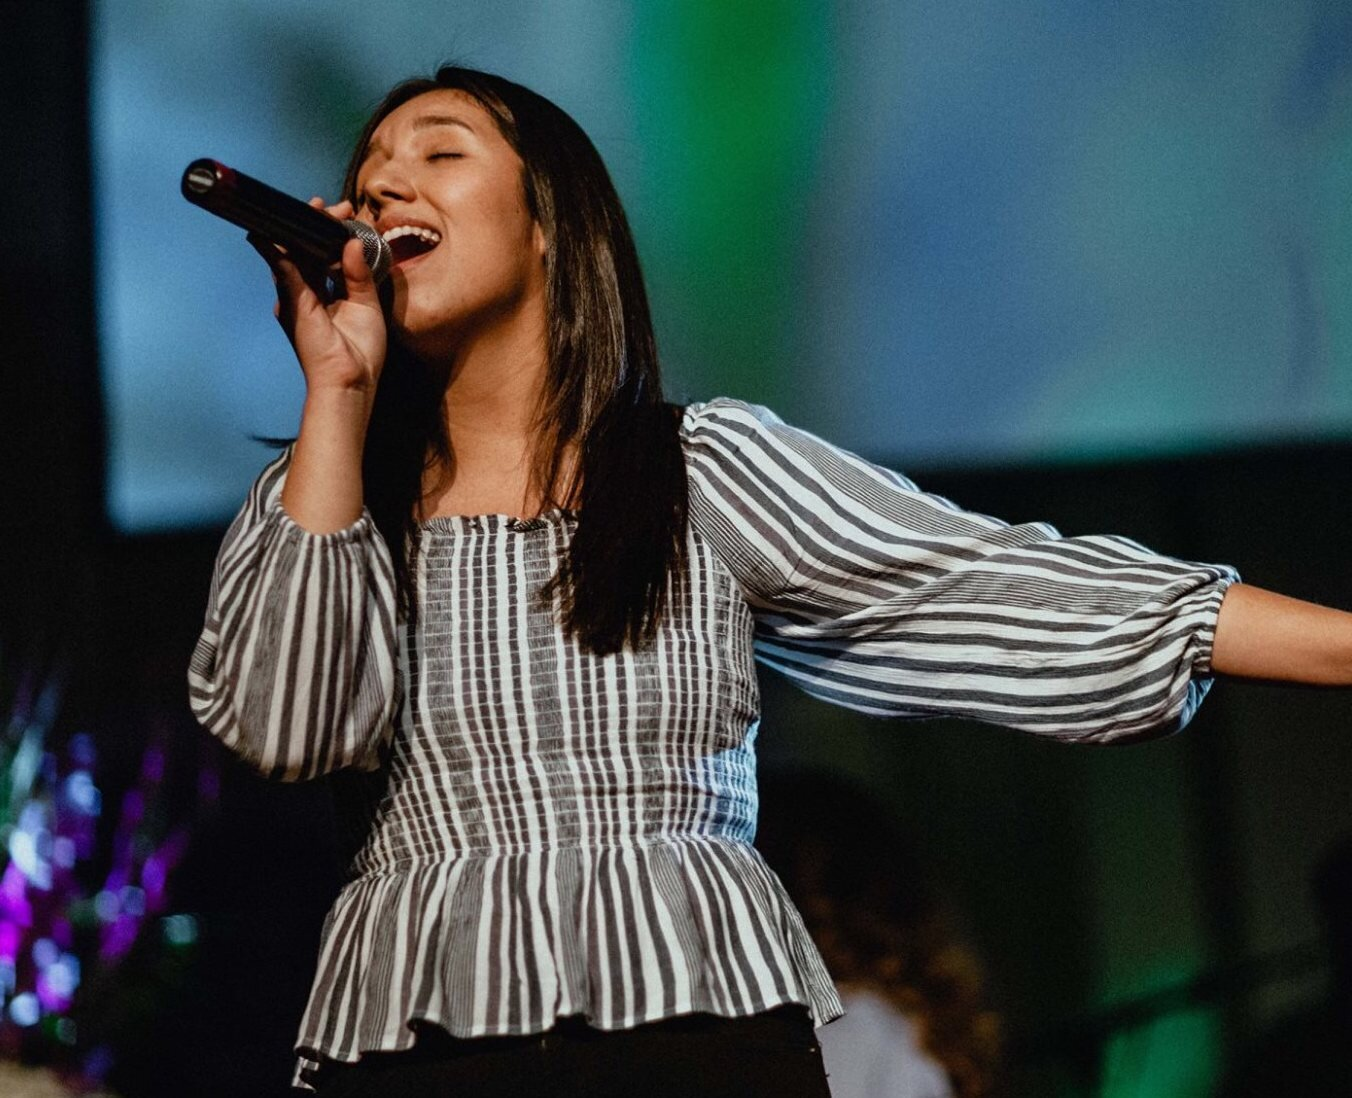 SECRET INGREDIENT #2 Families that Serve Together Form Faith and a Heart for Ministry.   I along with many other are blessed by YG's worship leaders, among them DBU collegian, Melody Mendez. We consider her one of the vibrant faces of our ministry, and I am so inspired and impressed by her love for Jesus 24/7. Melody is YG and shines Christ Jesus both on and off stage.  You may not know one of the major influences that has shaped Melody's ministry and her heart for GOD. It's one of the secret sauce ingredients that often goes undetected by people.